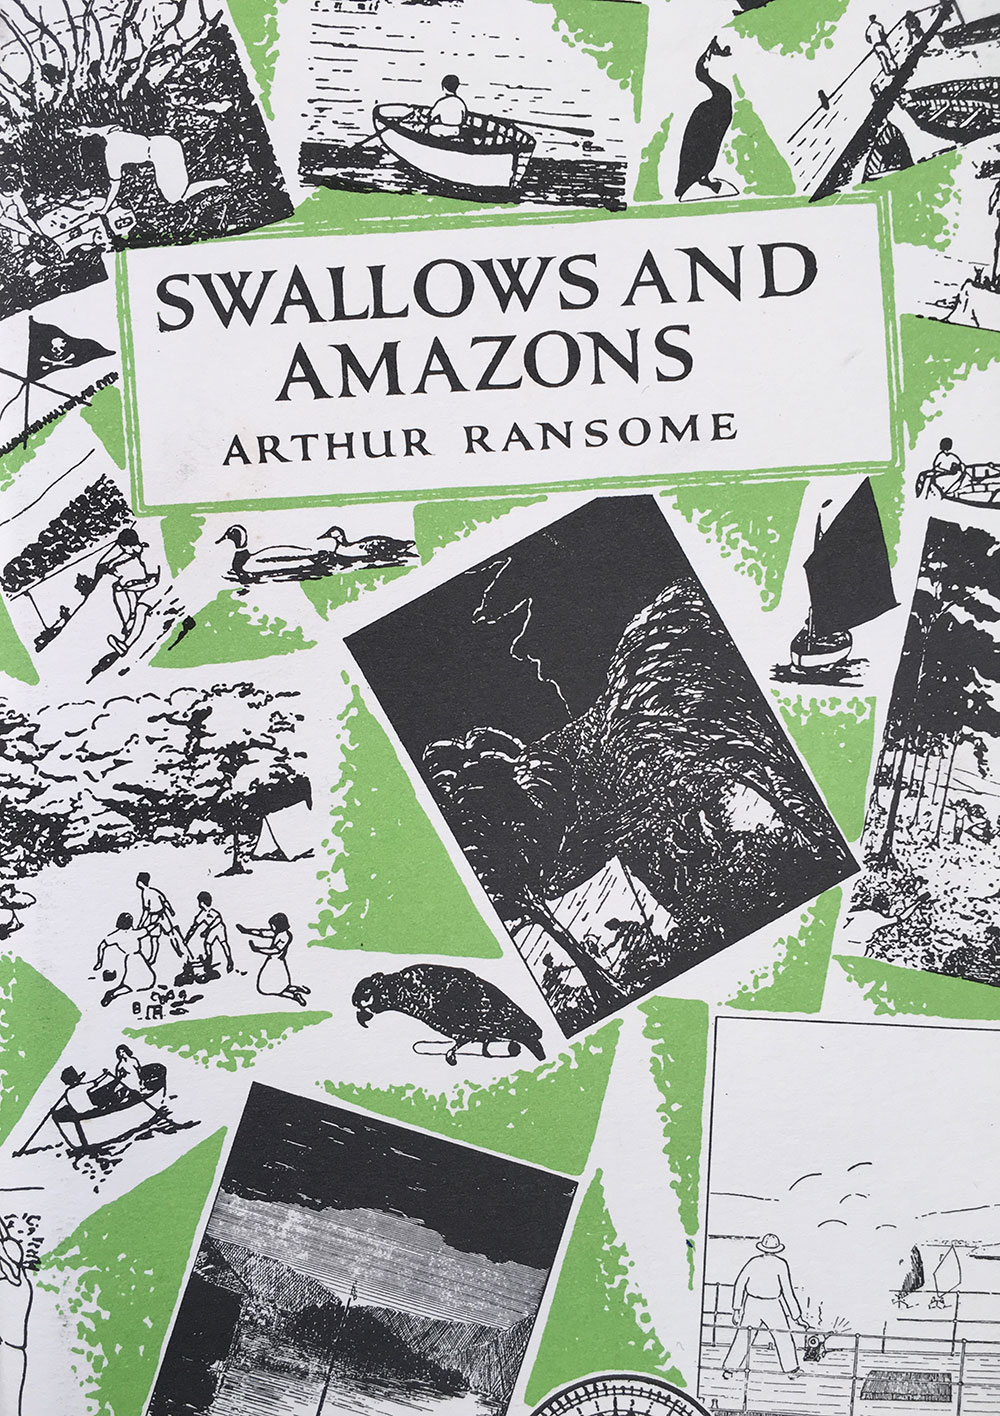 Swallows and Amazons is a great read for children and adults alike.